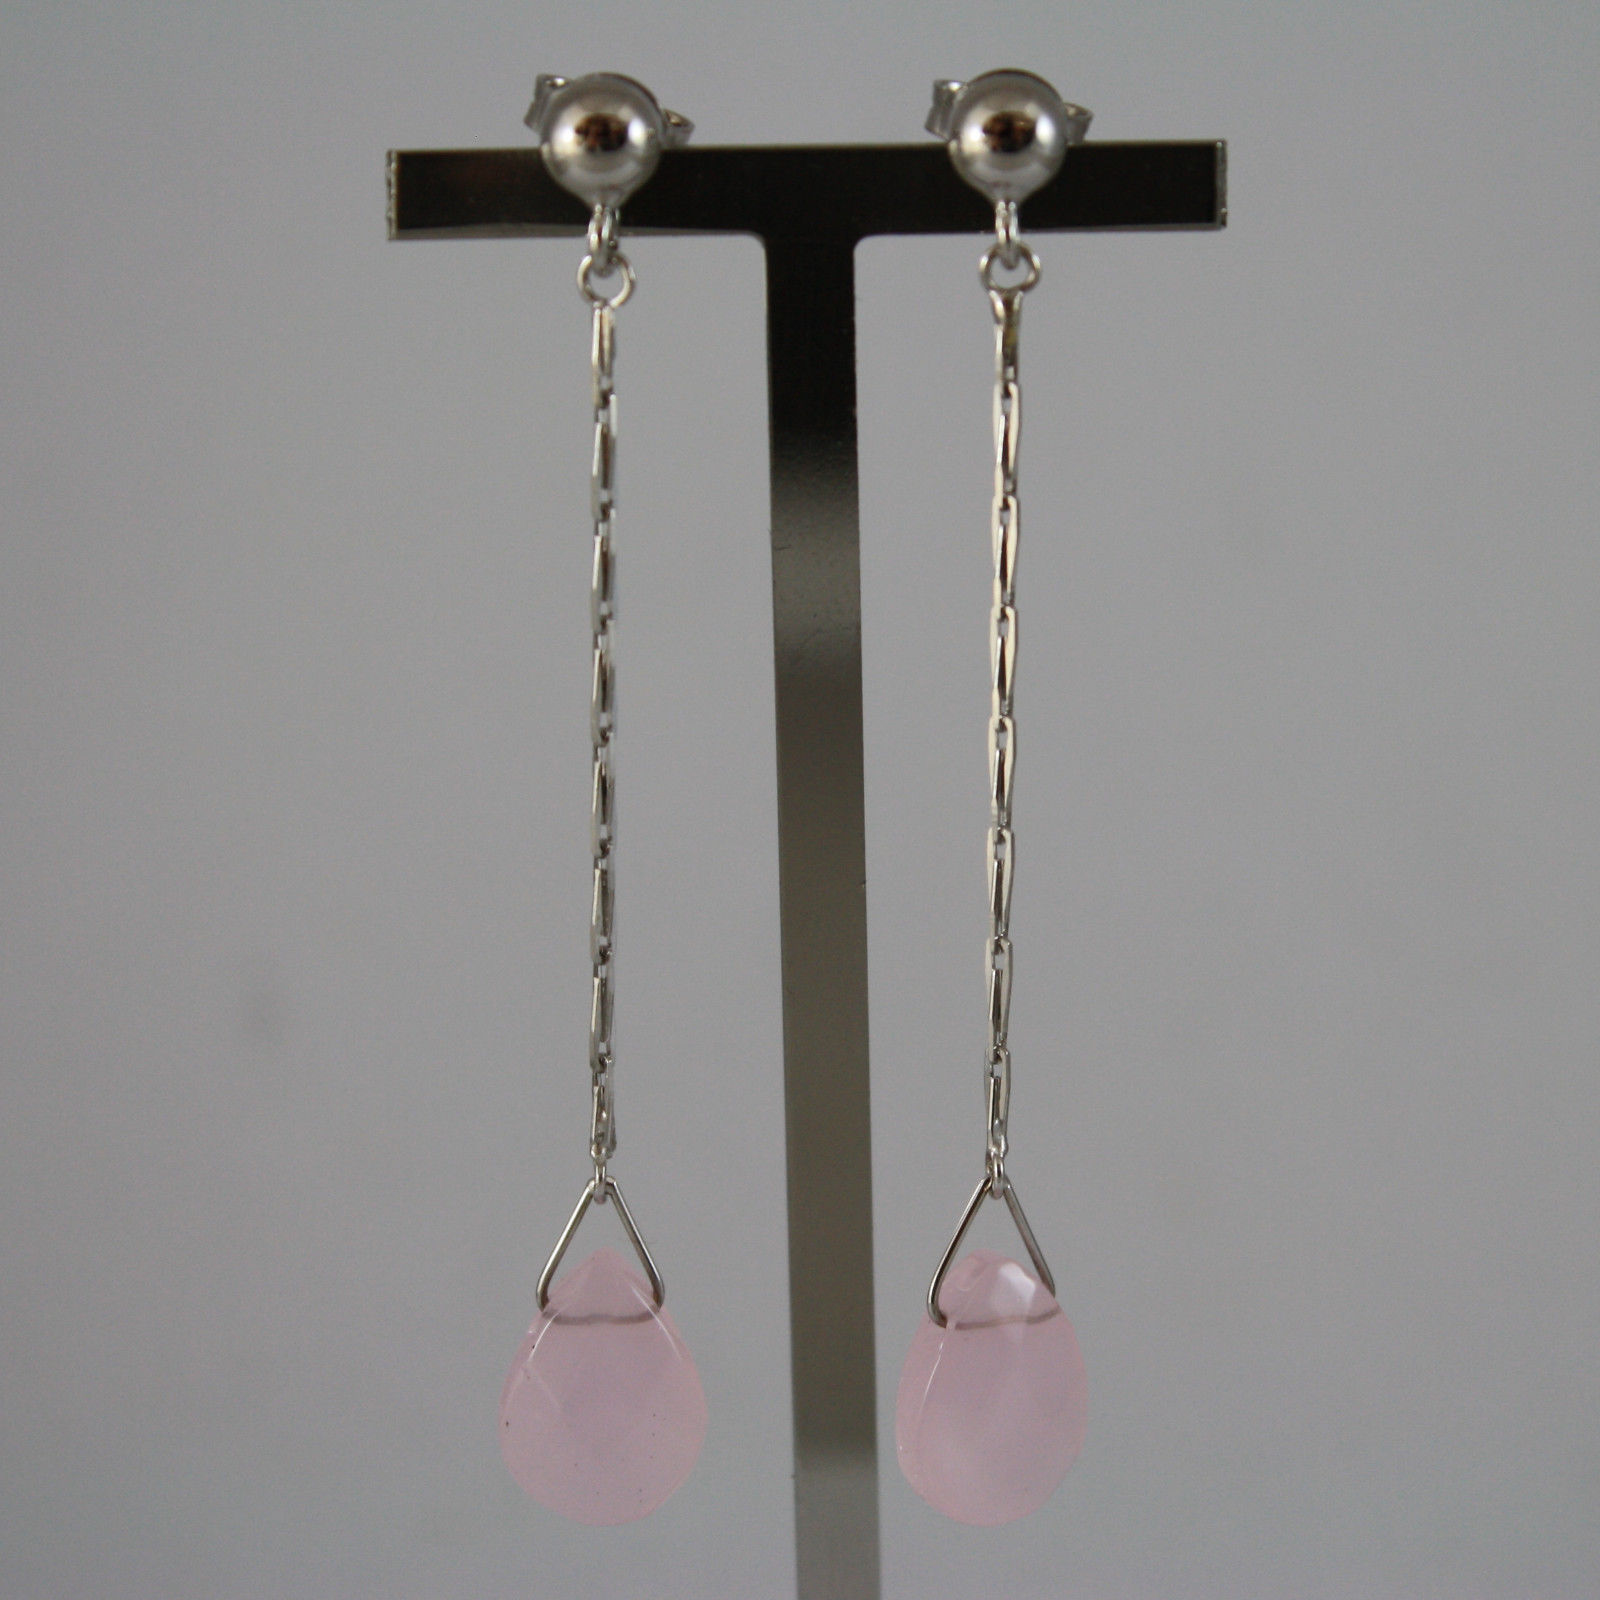 SOLID 18K WHITE GOLD EARRINGS, WITH DROP OF PINK QUARTZ LENGTH 2,48 IN